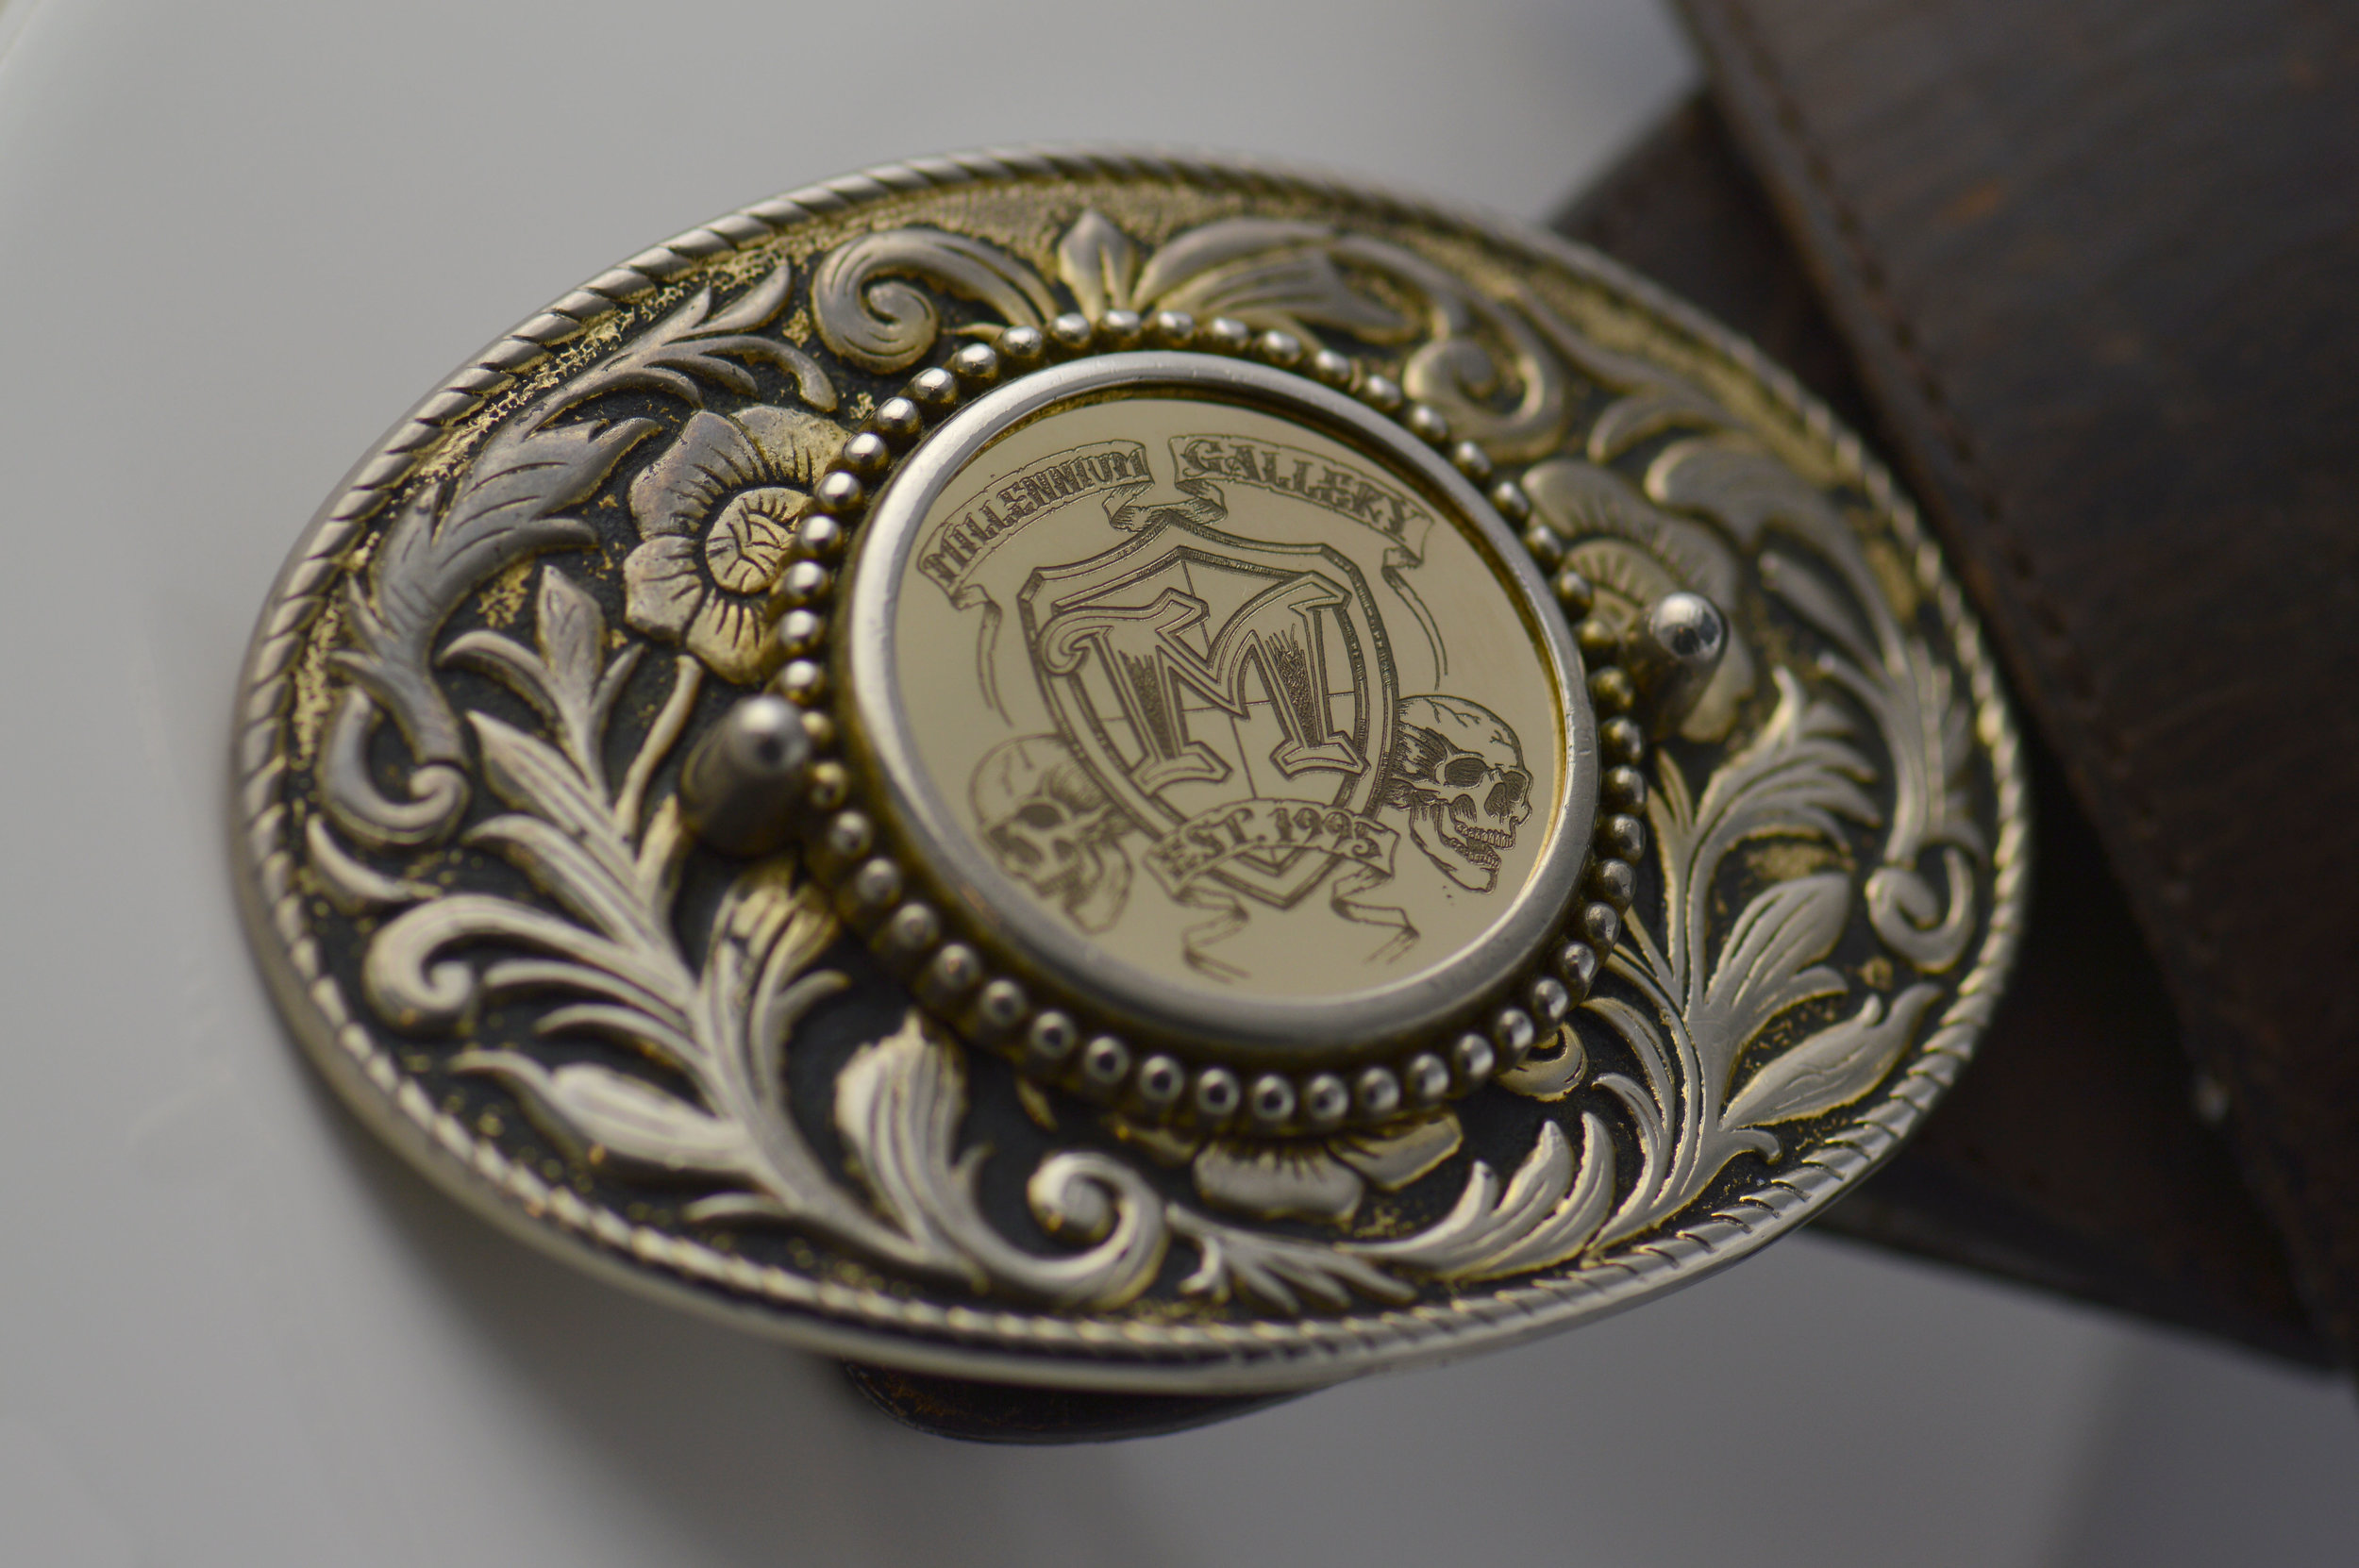 Engraved 1 ounce gold coin in a vintage belt buckle celebrating 10 years with the company.